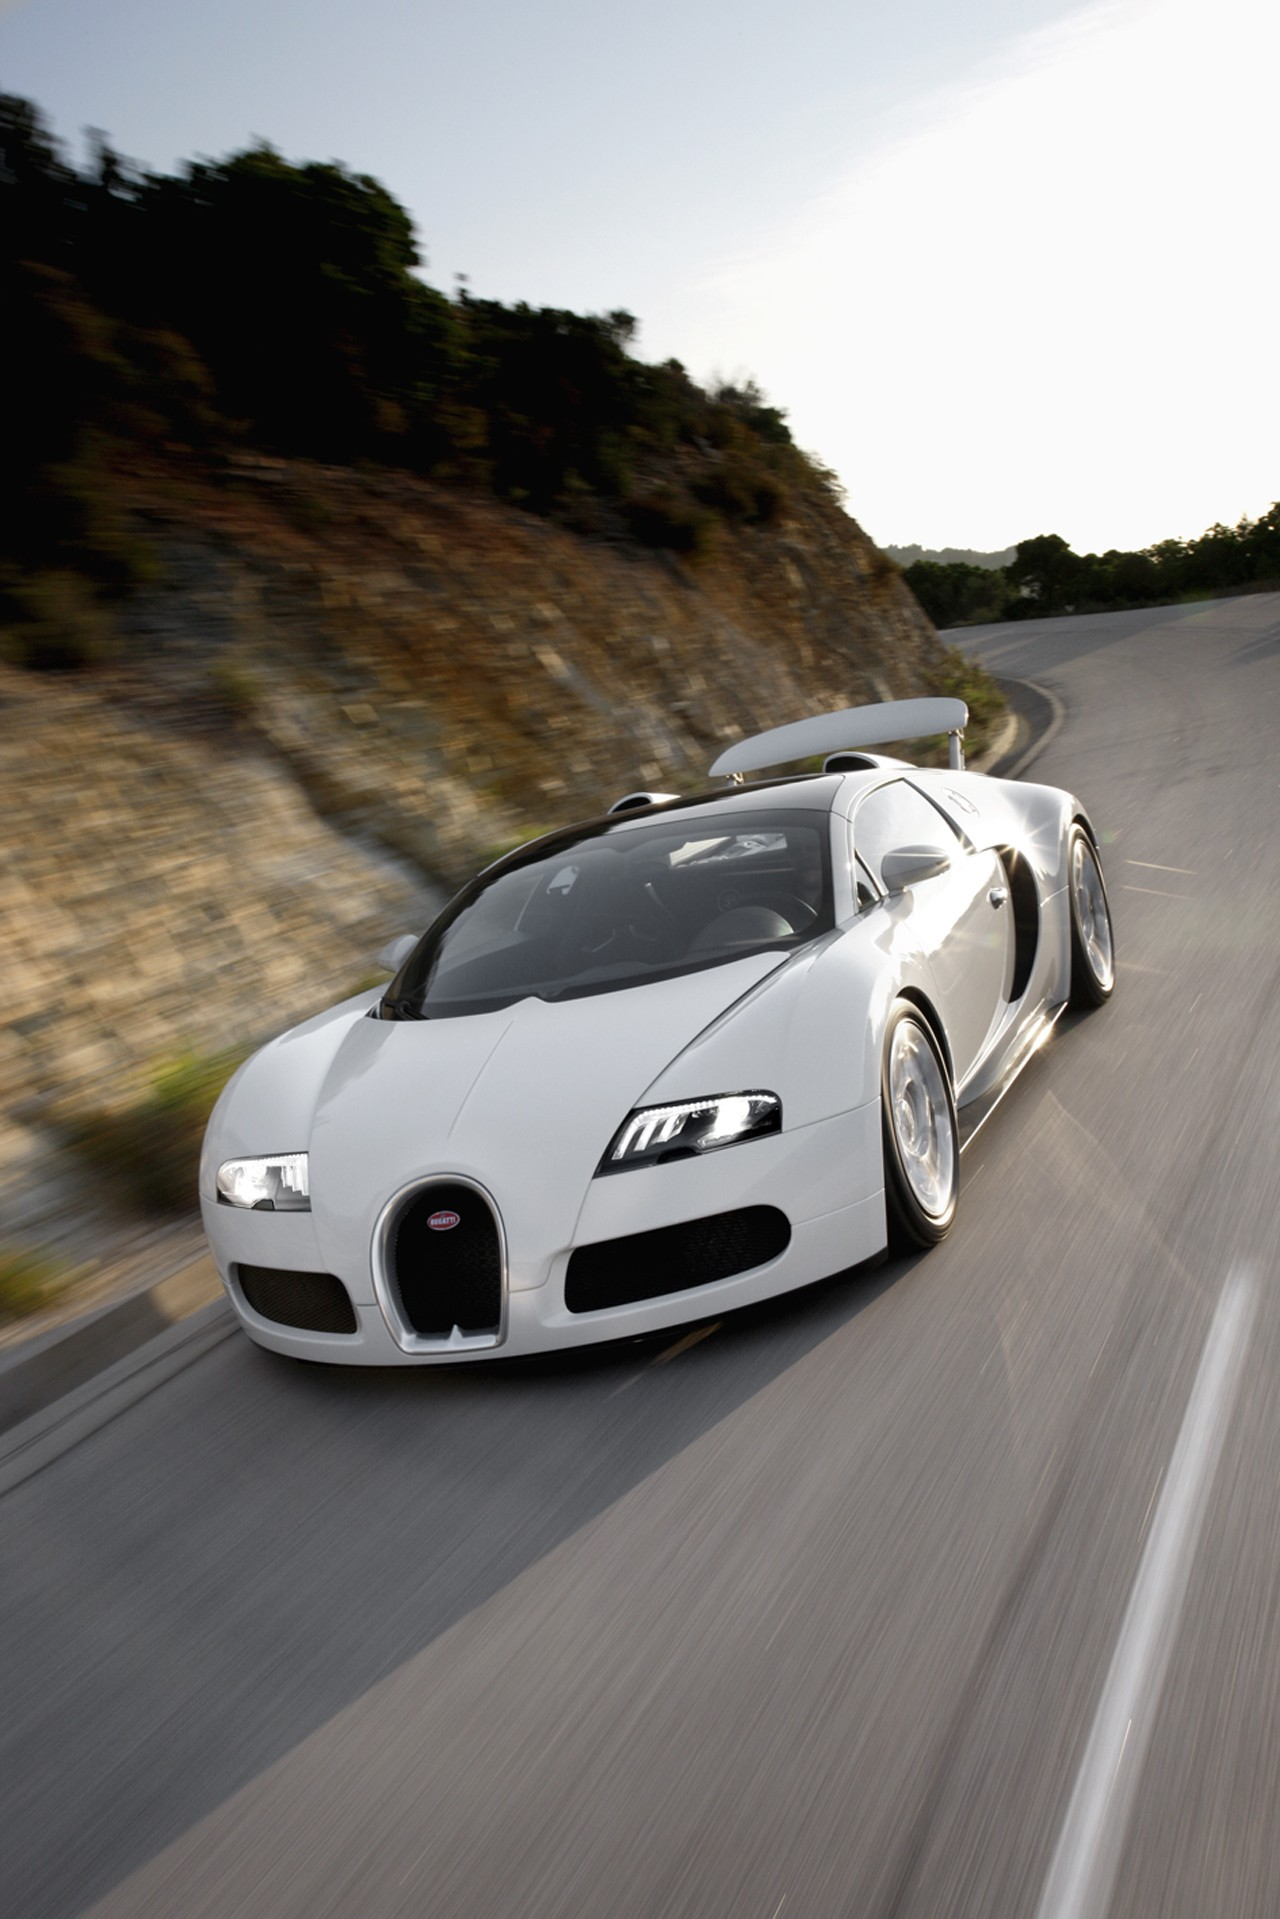 Cars wallpapers bugatti veyron picgifs cars wallpapers bugatti veyron voltagebd Image collections